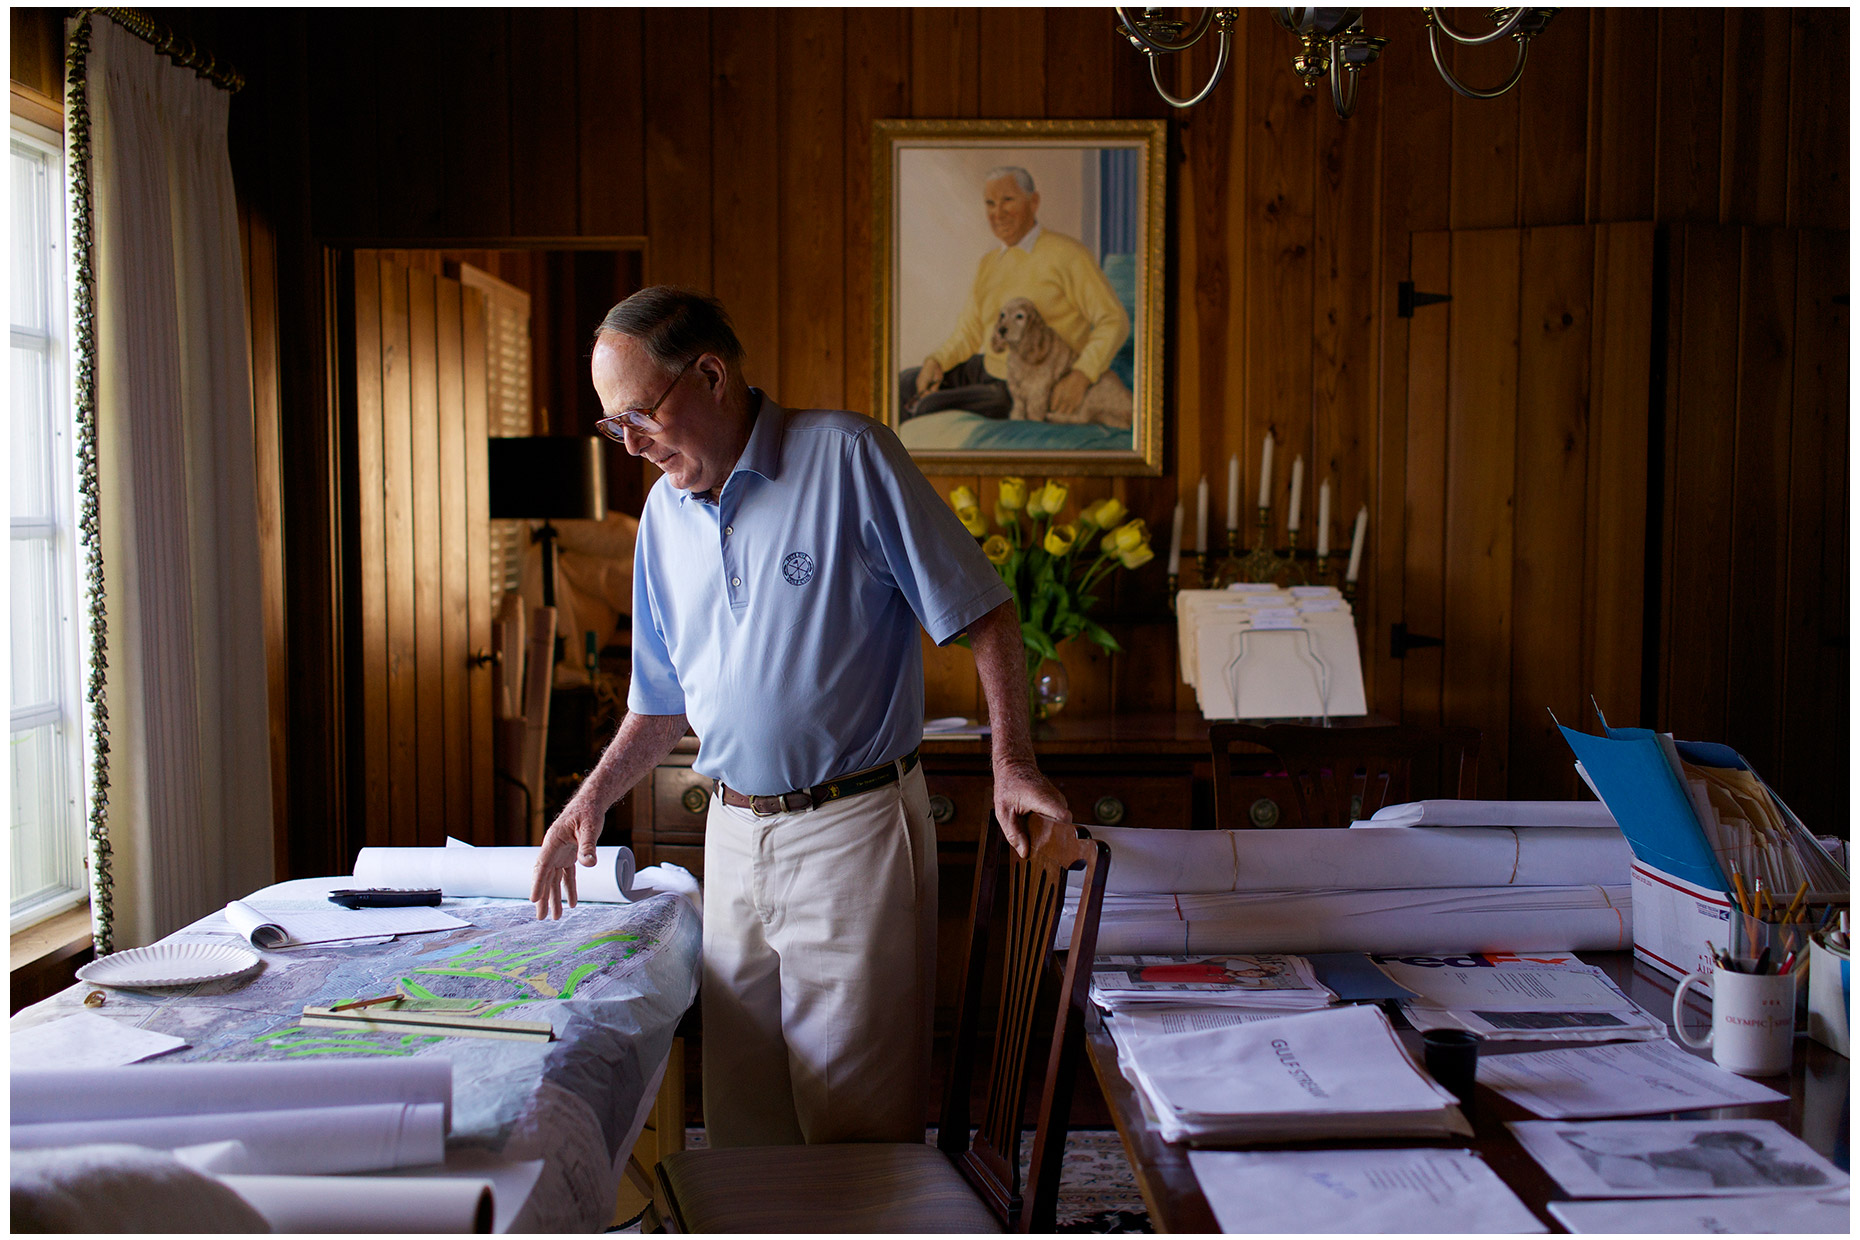 Pete Dye looking over a course layout in his dining room. Photographed for Golf World magazine.